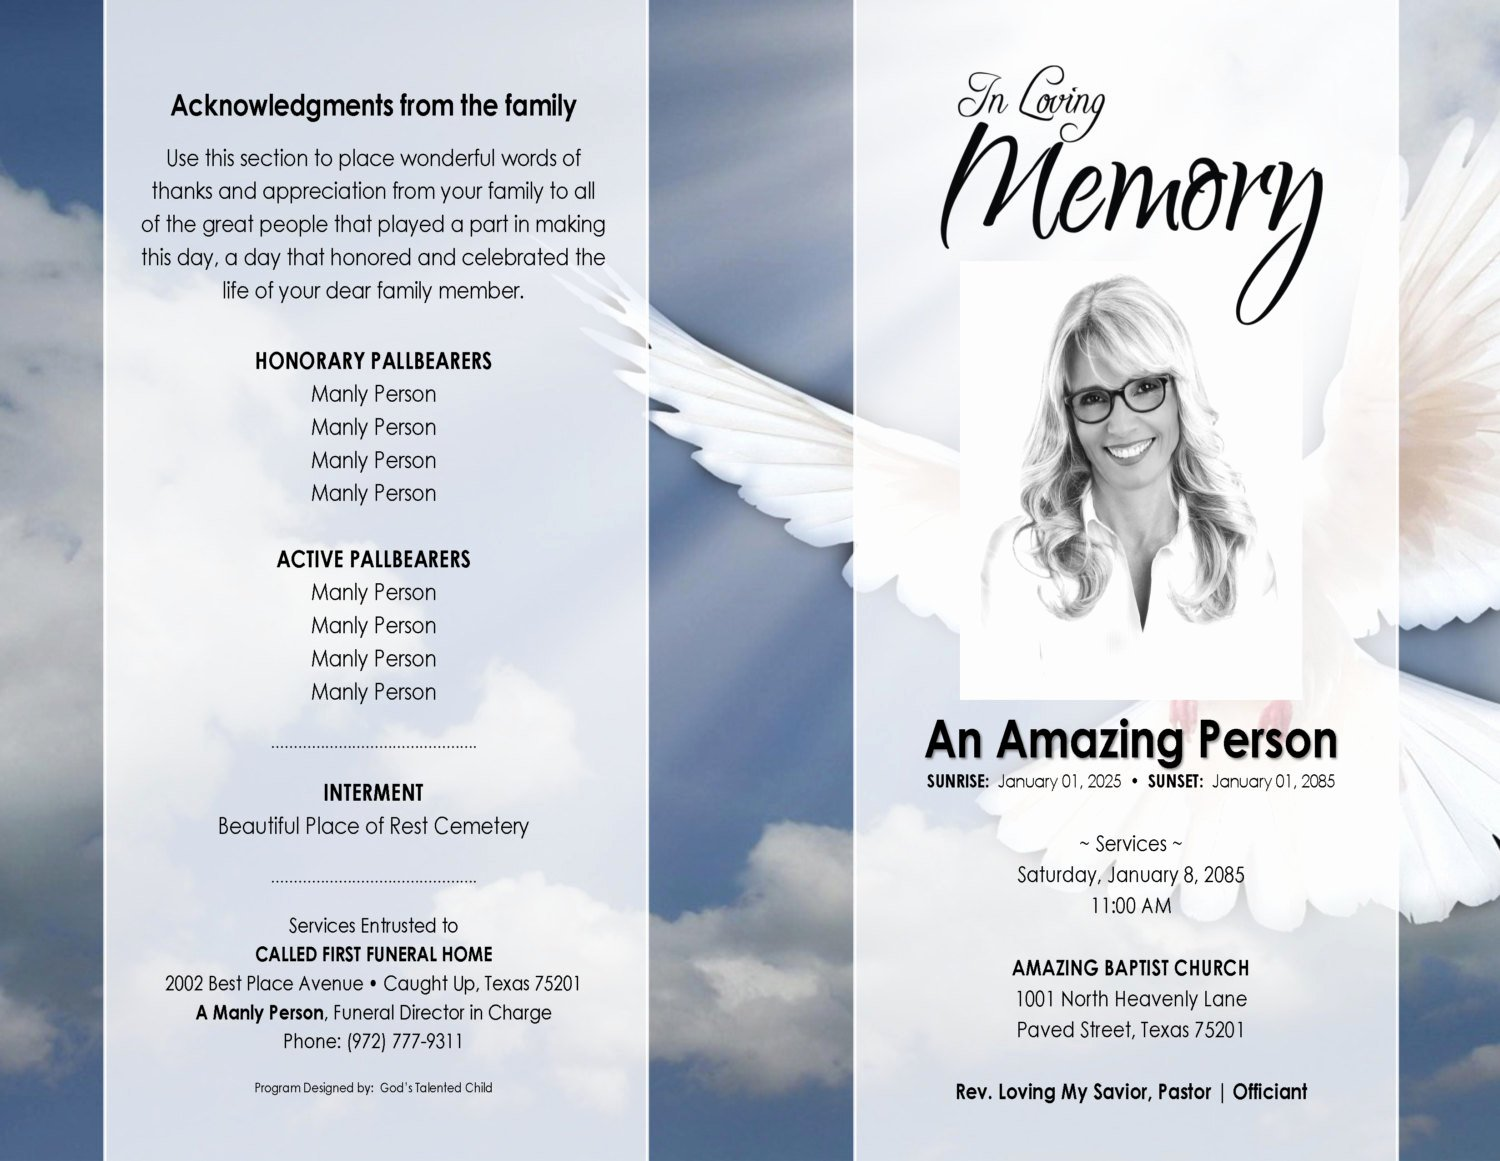 Blank Funeral Program Template Lovely 11x17 Heavenly Dove Printable Funeral Program